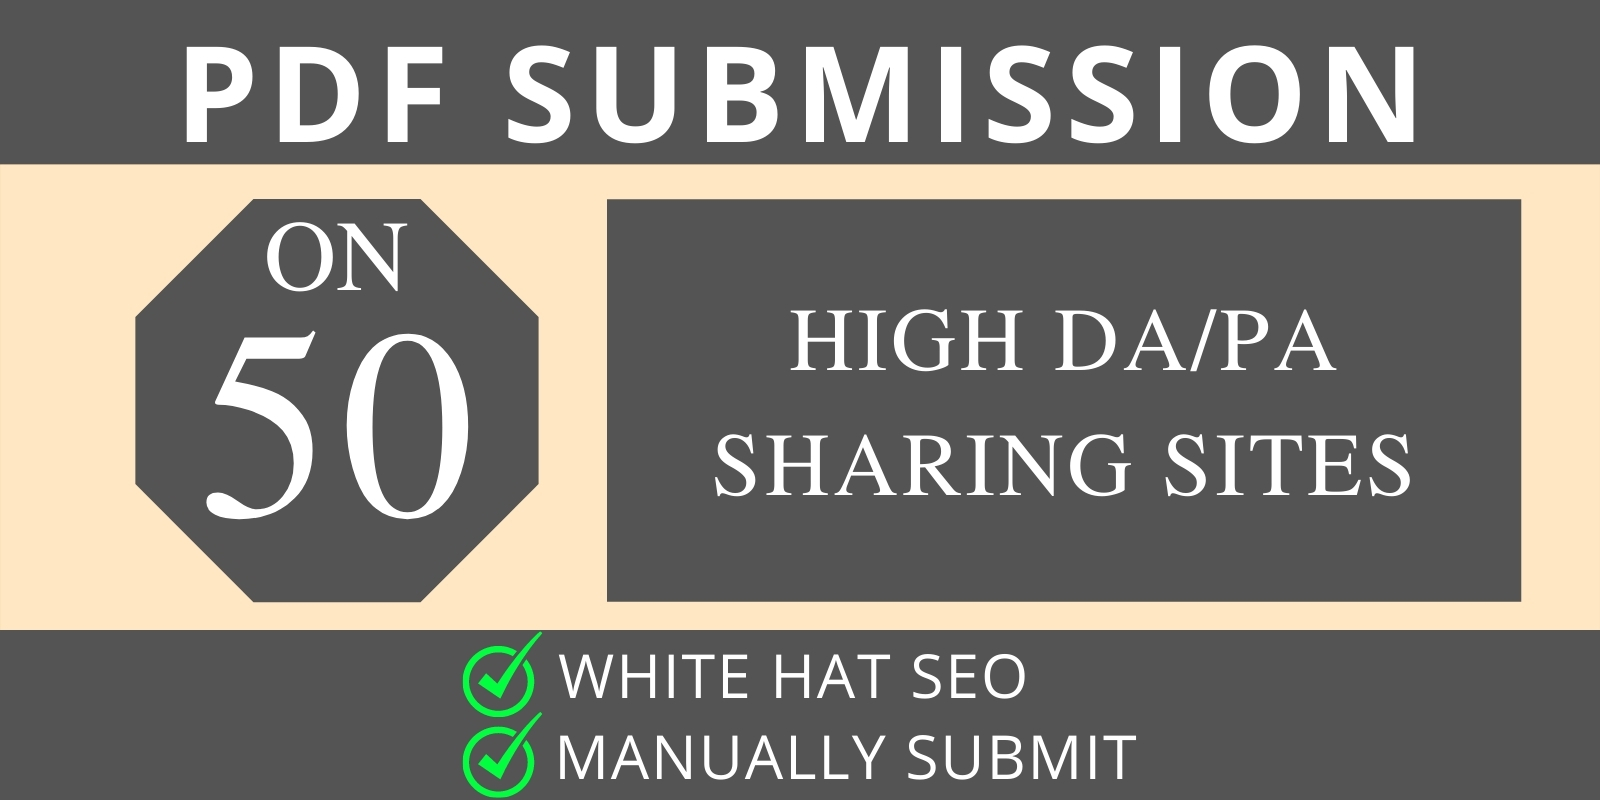 I will do manual PDF submission on top 50 document sharing sites